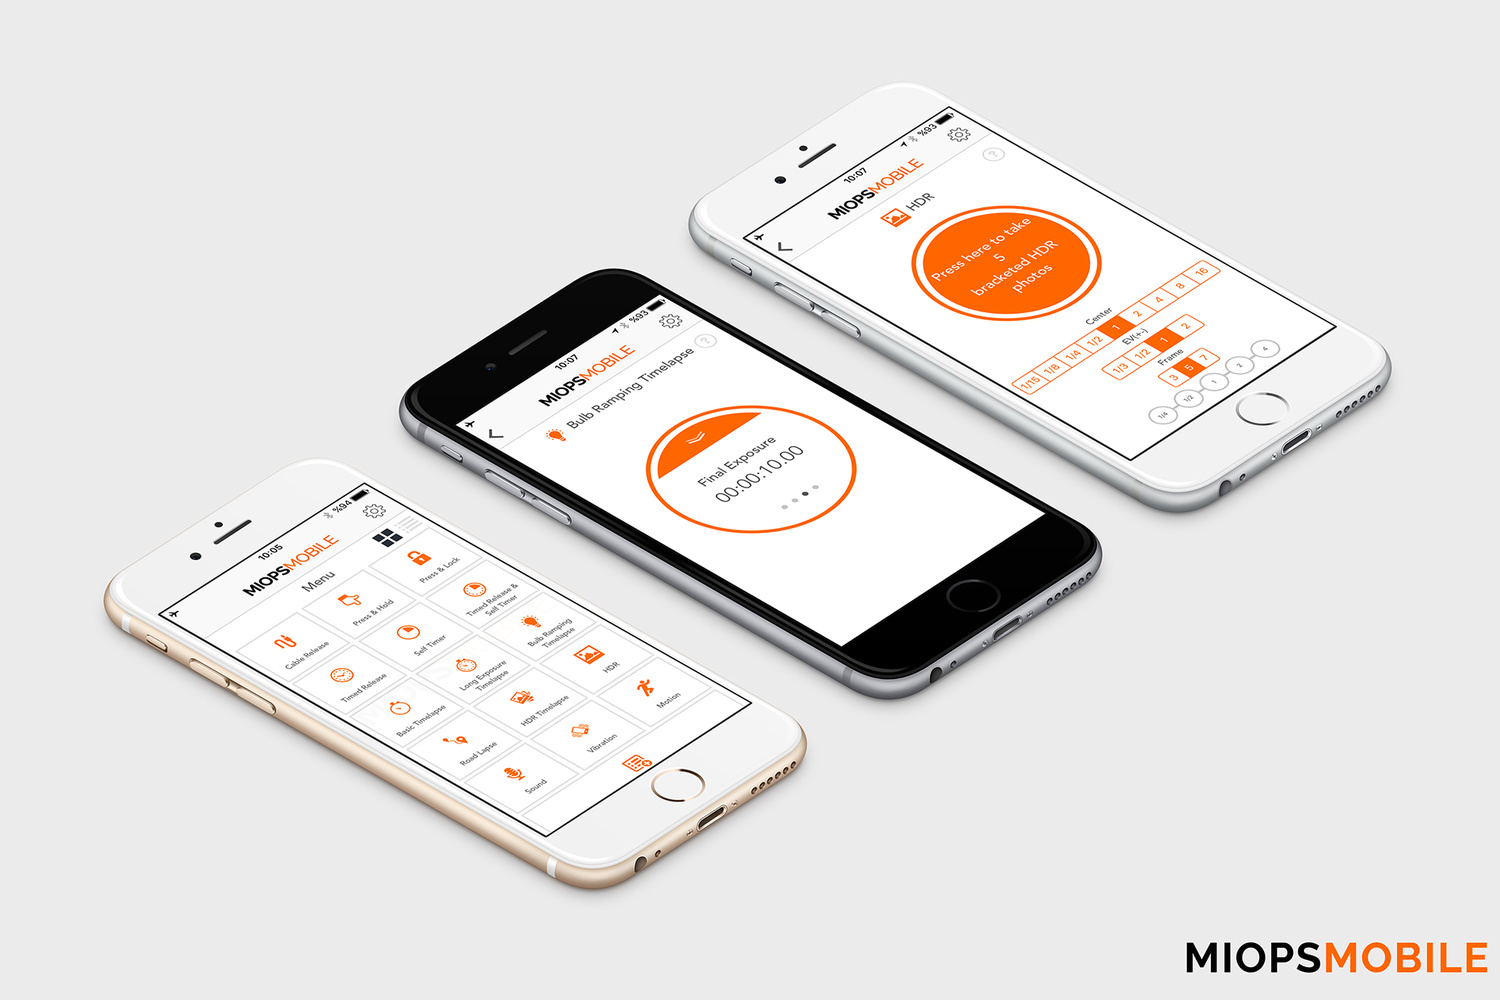 miops mobile iphone app